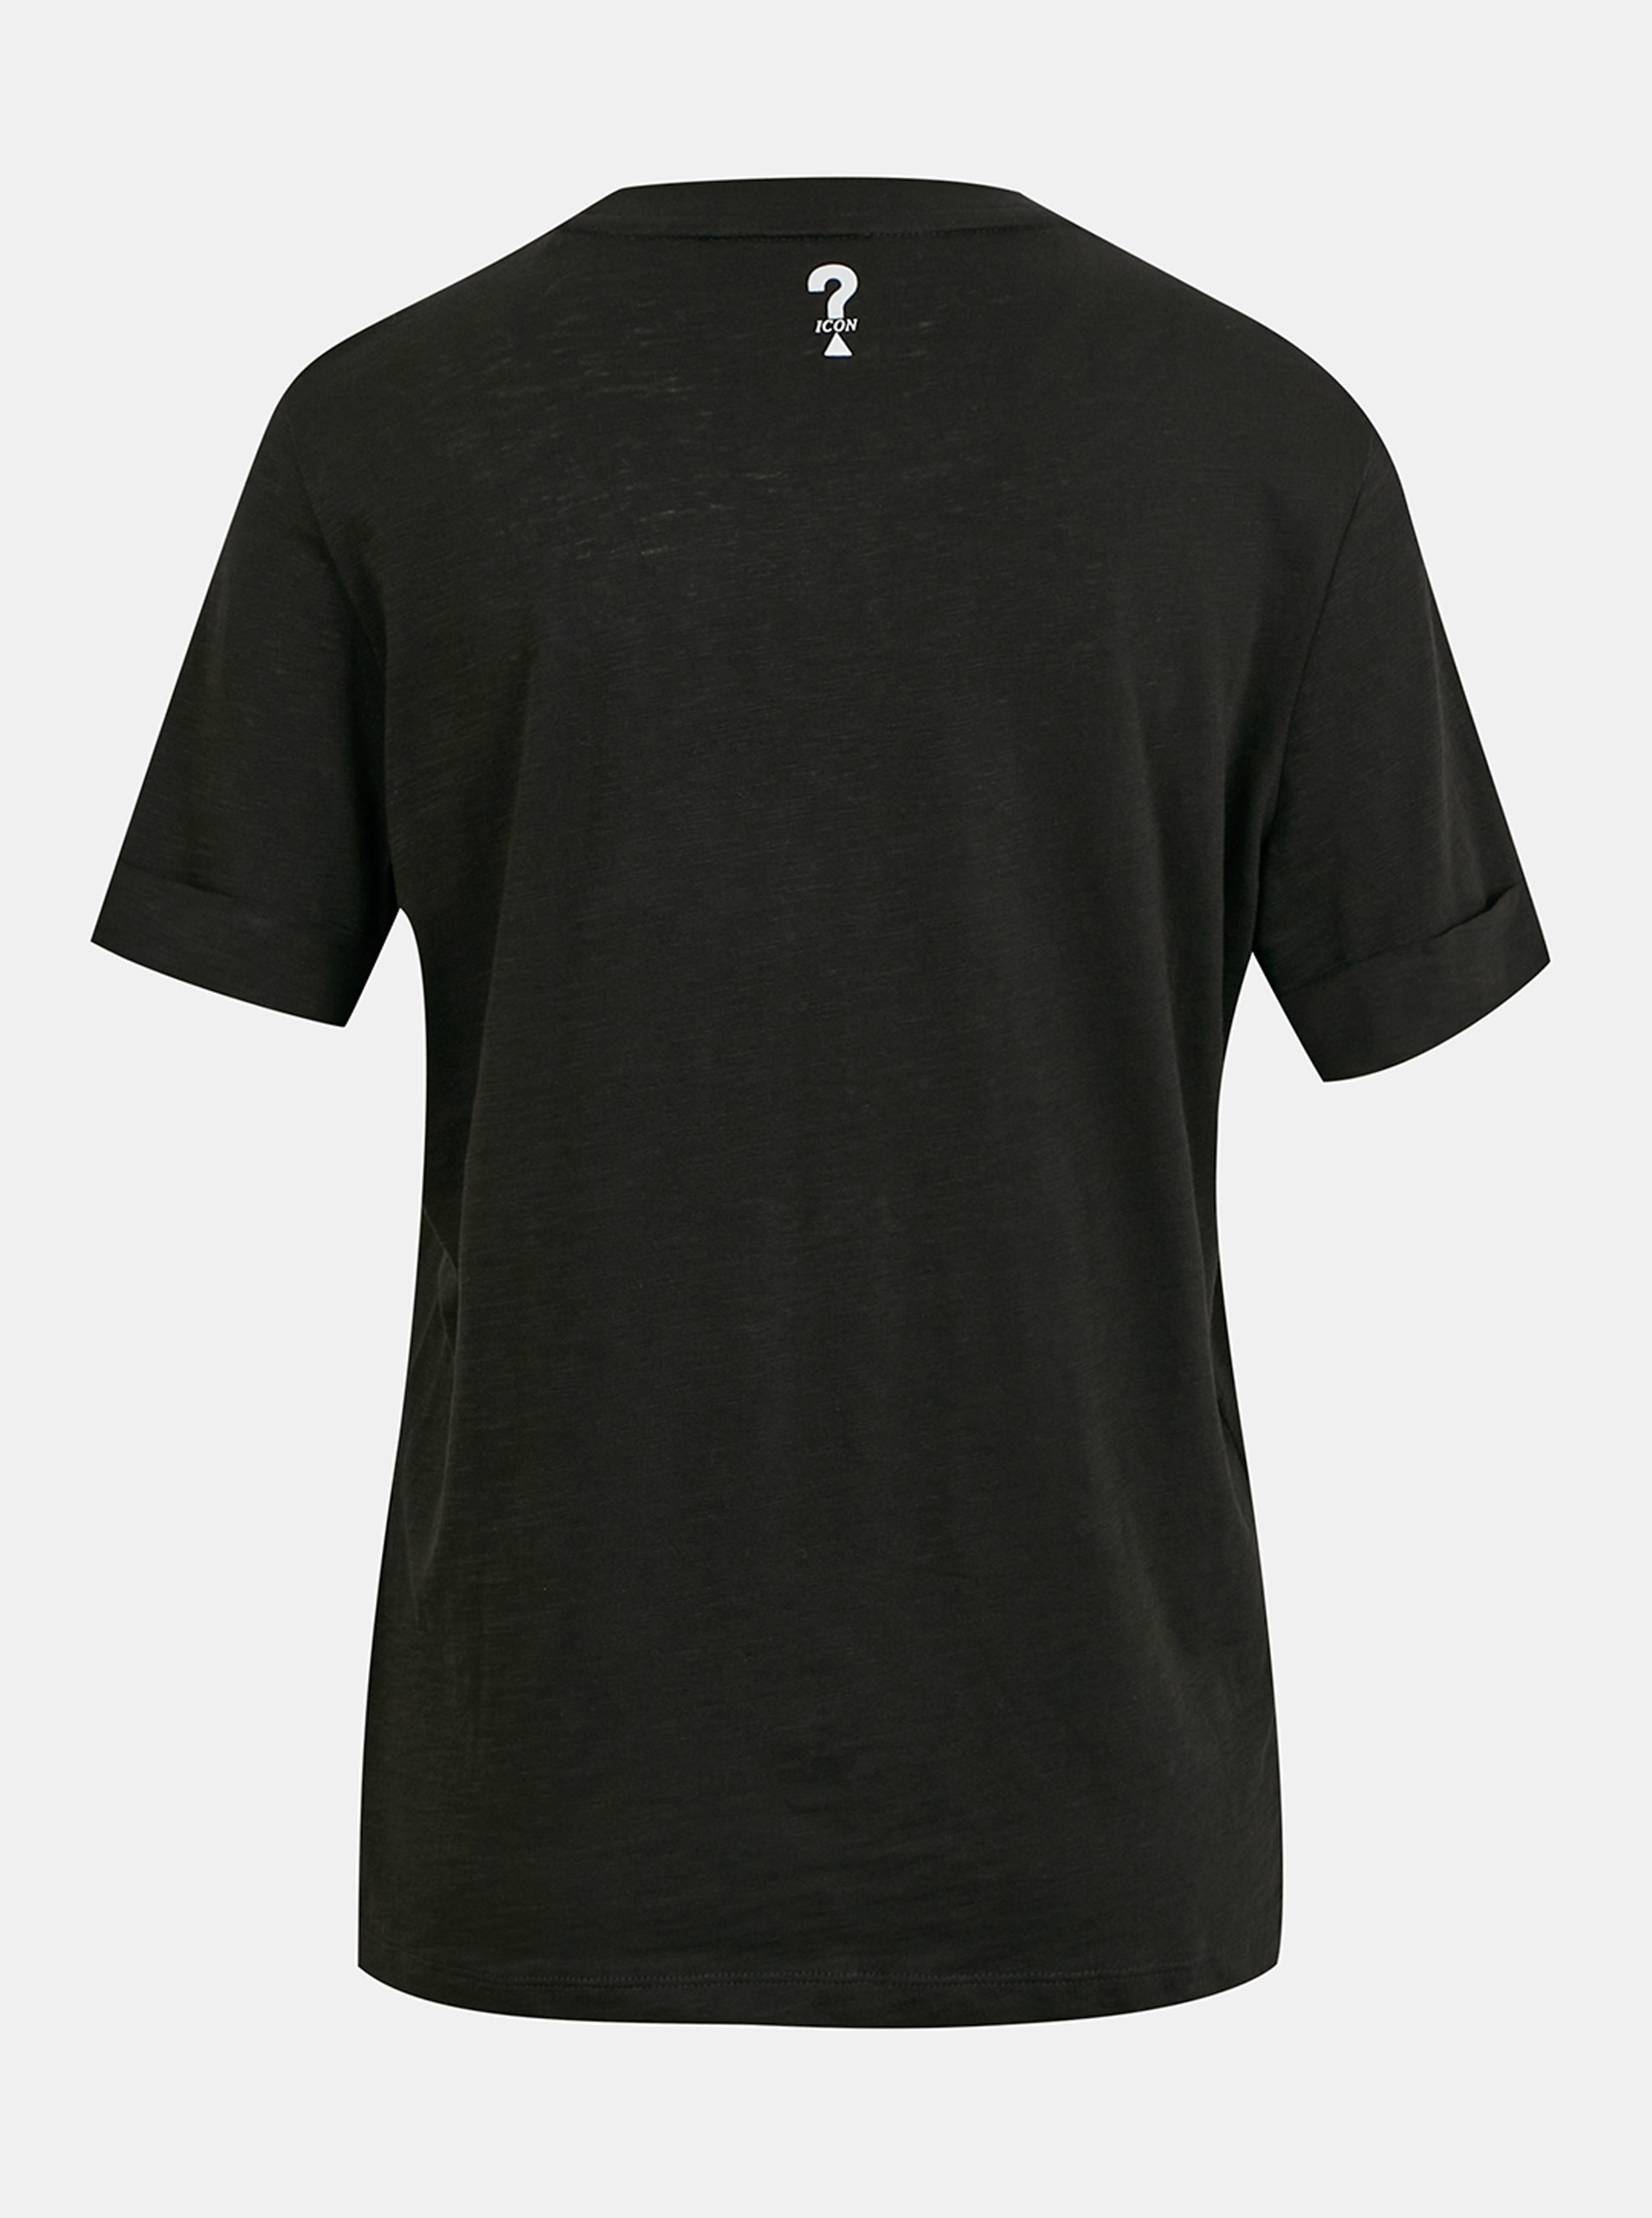 Guess negre tricou Guess Odette Tee